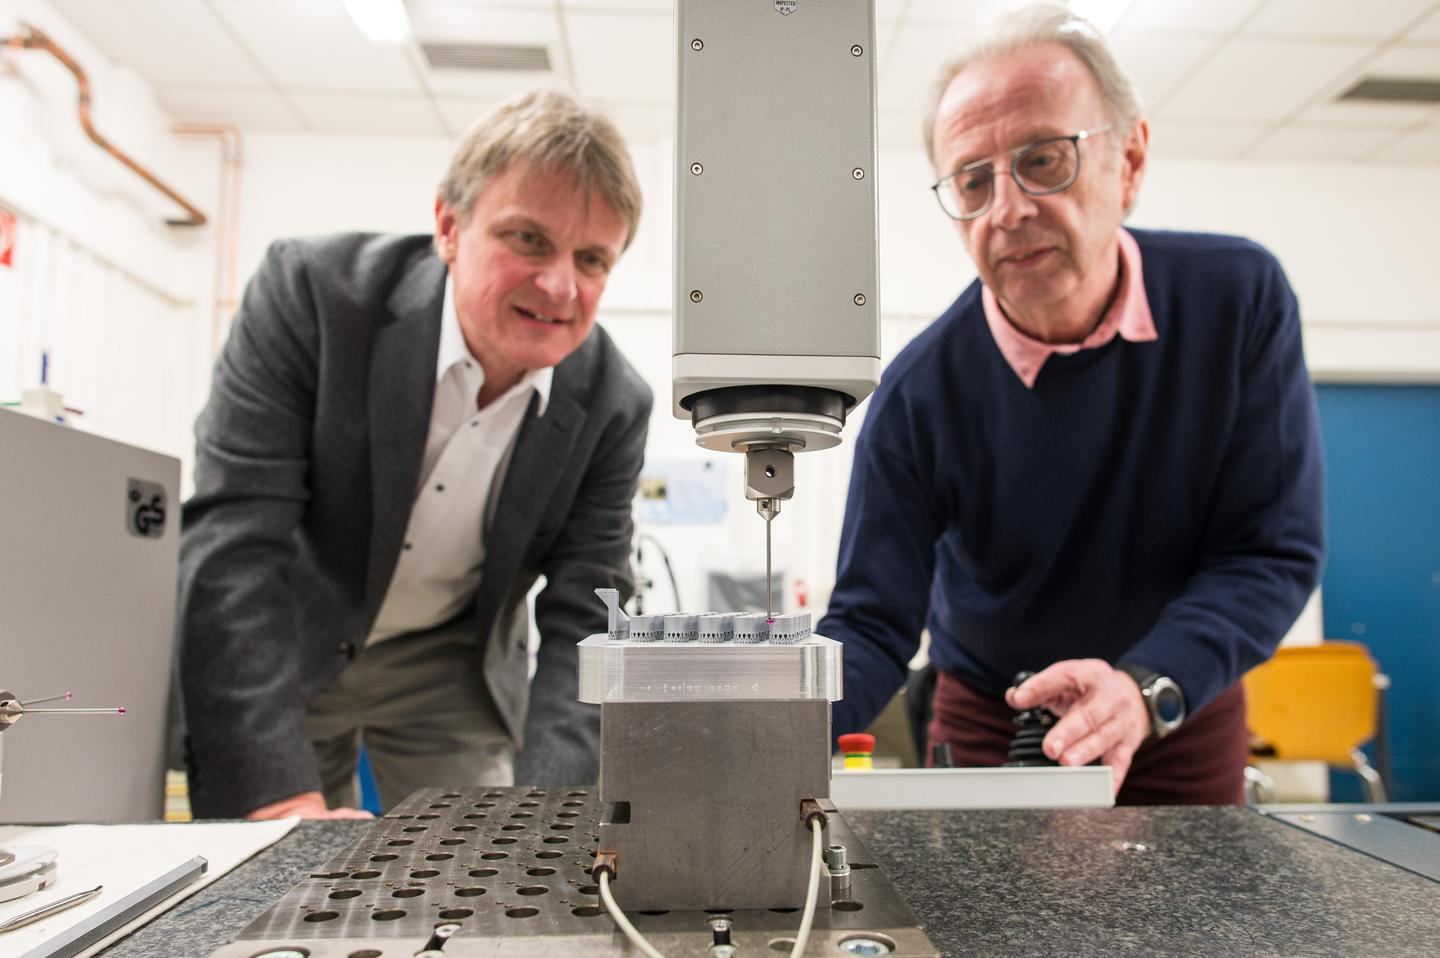 Prof. Dirk Bähre (left) and technical assistant Stefan Wilhelm demonstrate the new system